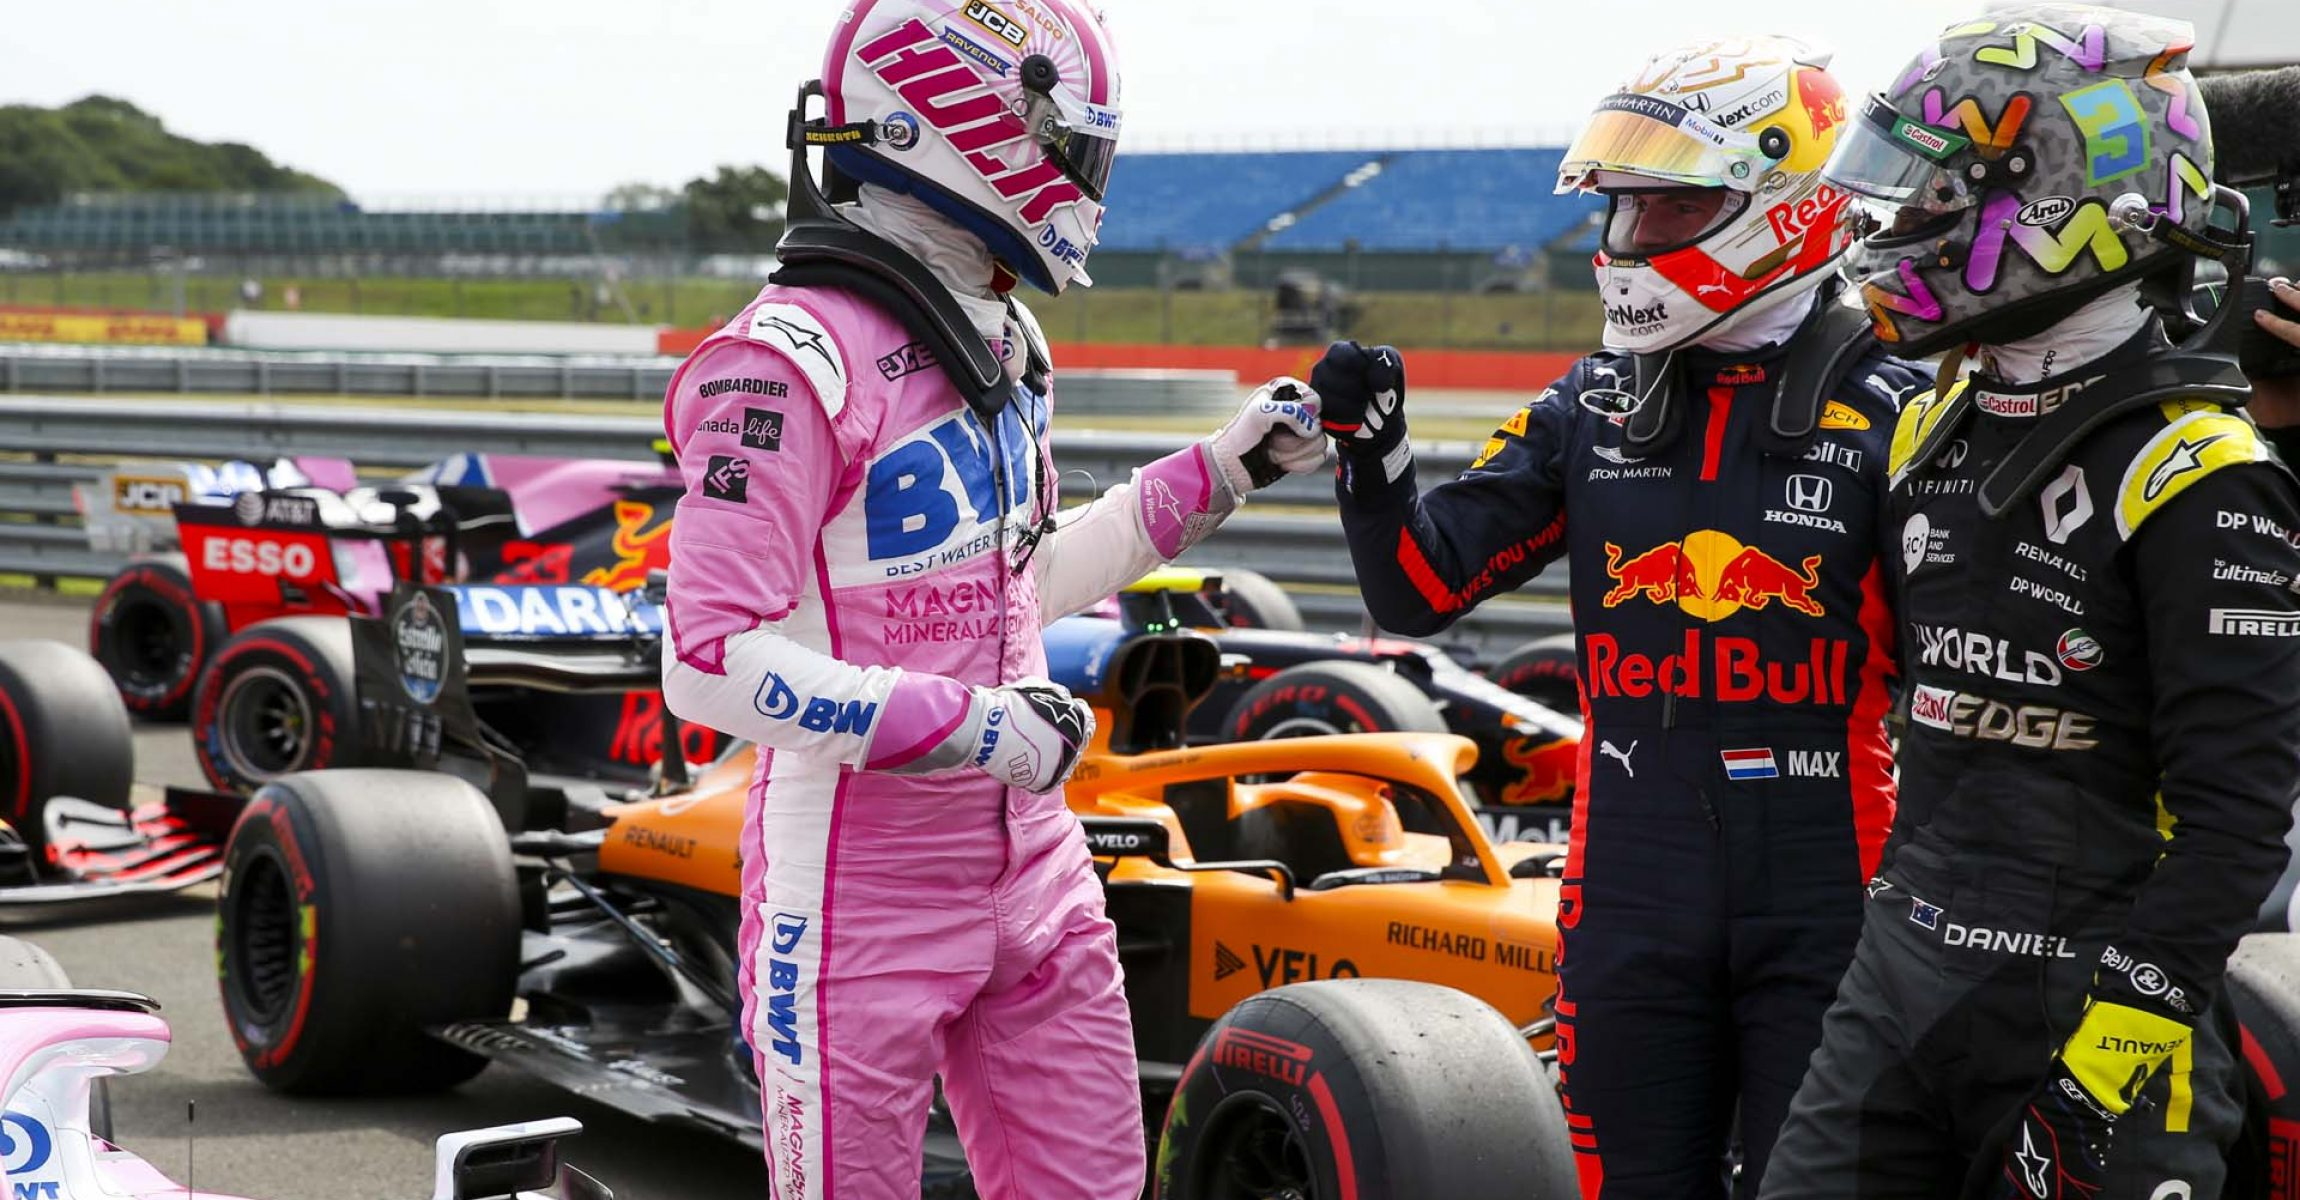 Daniel Ricciardo, Renault F1, and Max Verstappen, Red Bull Racing, congratulate Nico Hülkenberg, Racing Point RP20, in Parc Ferme after he secured third on the grid